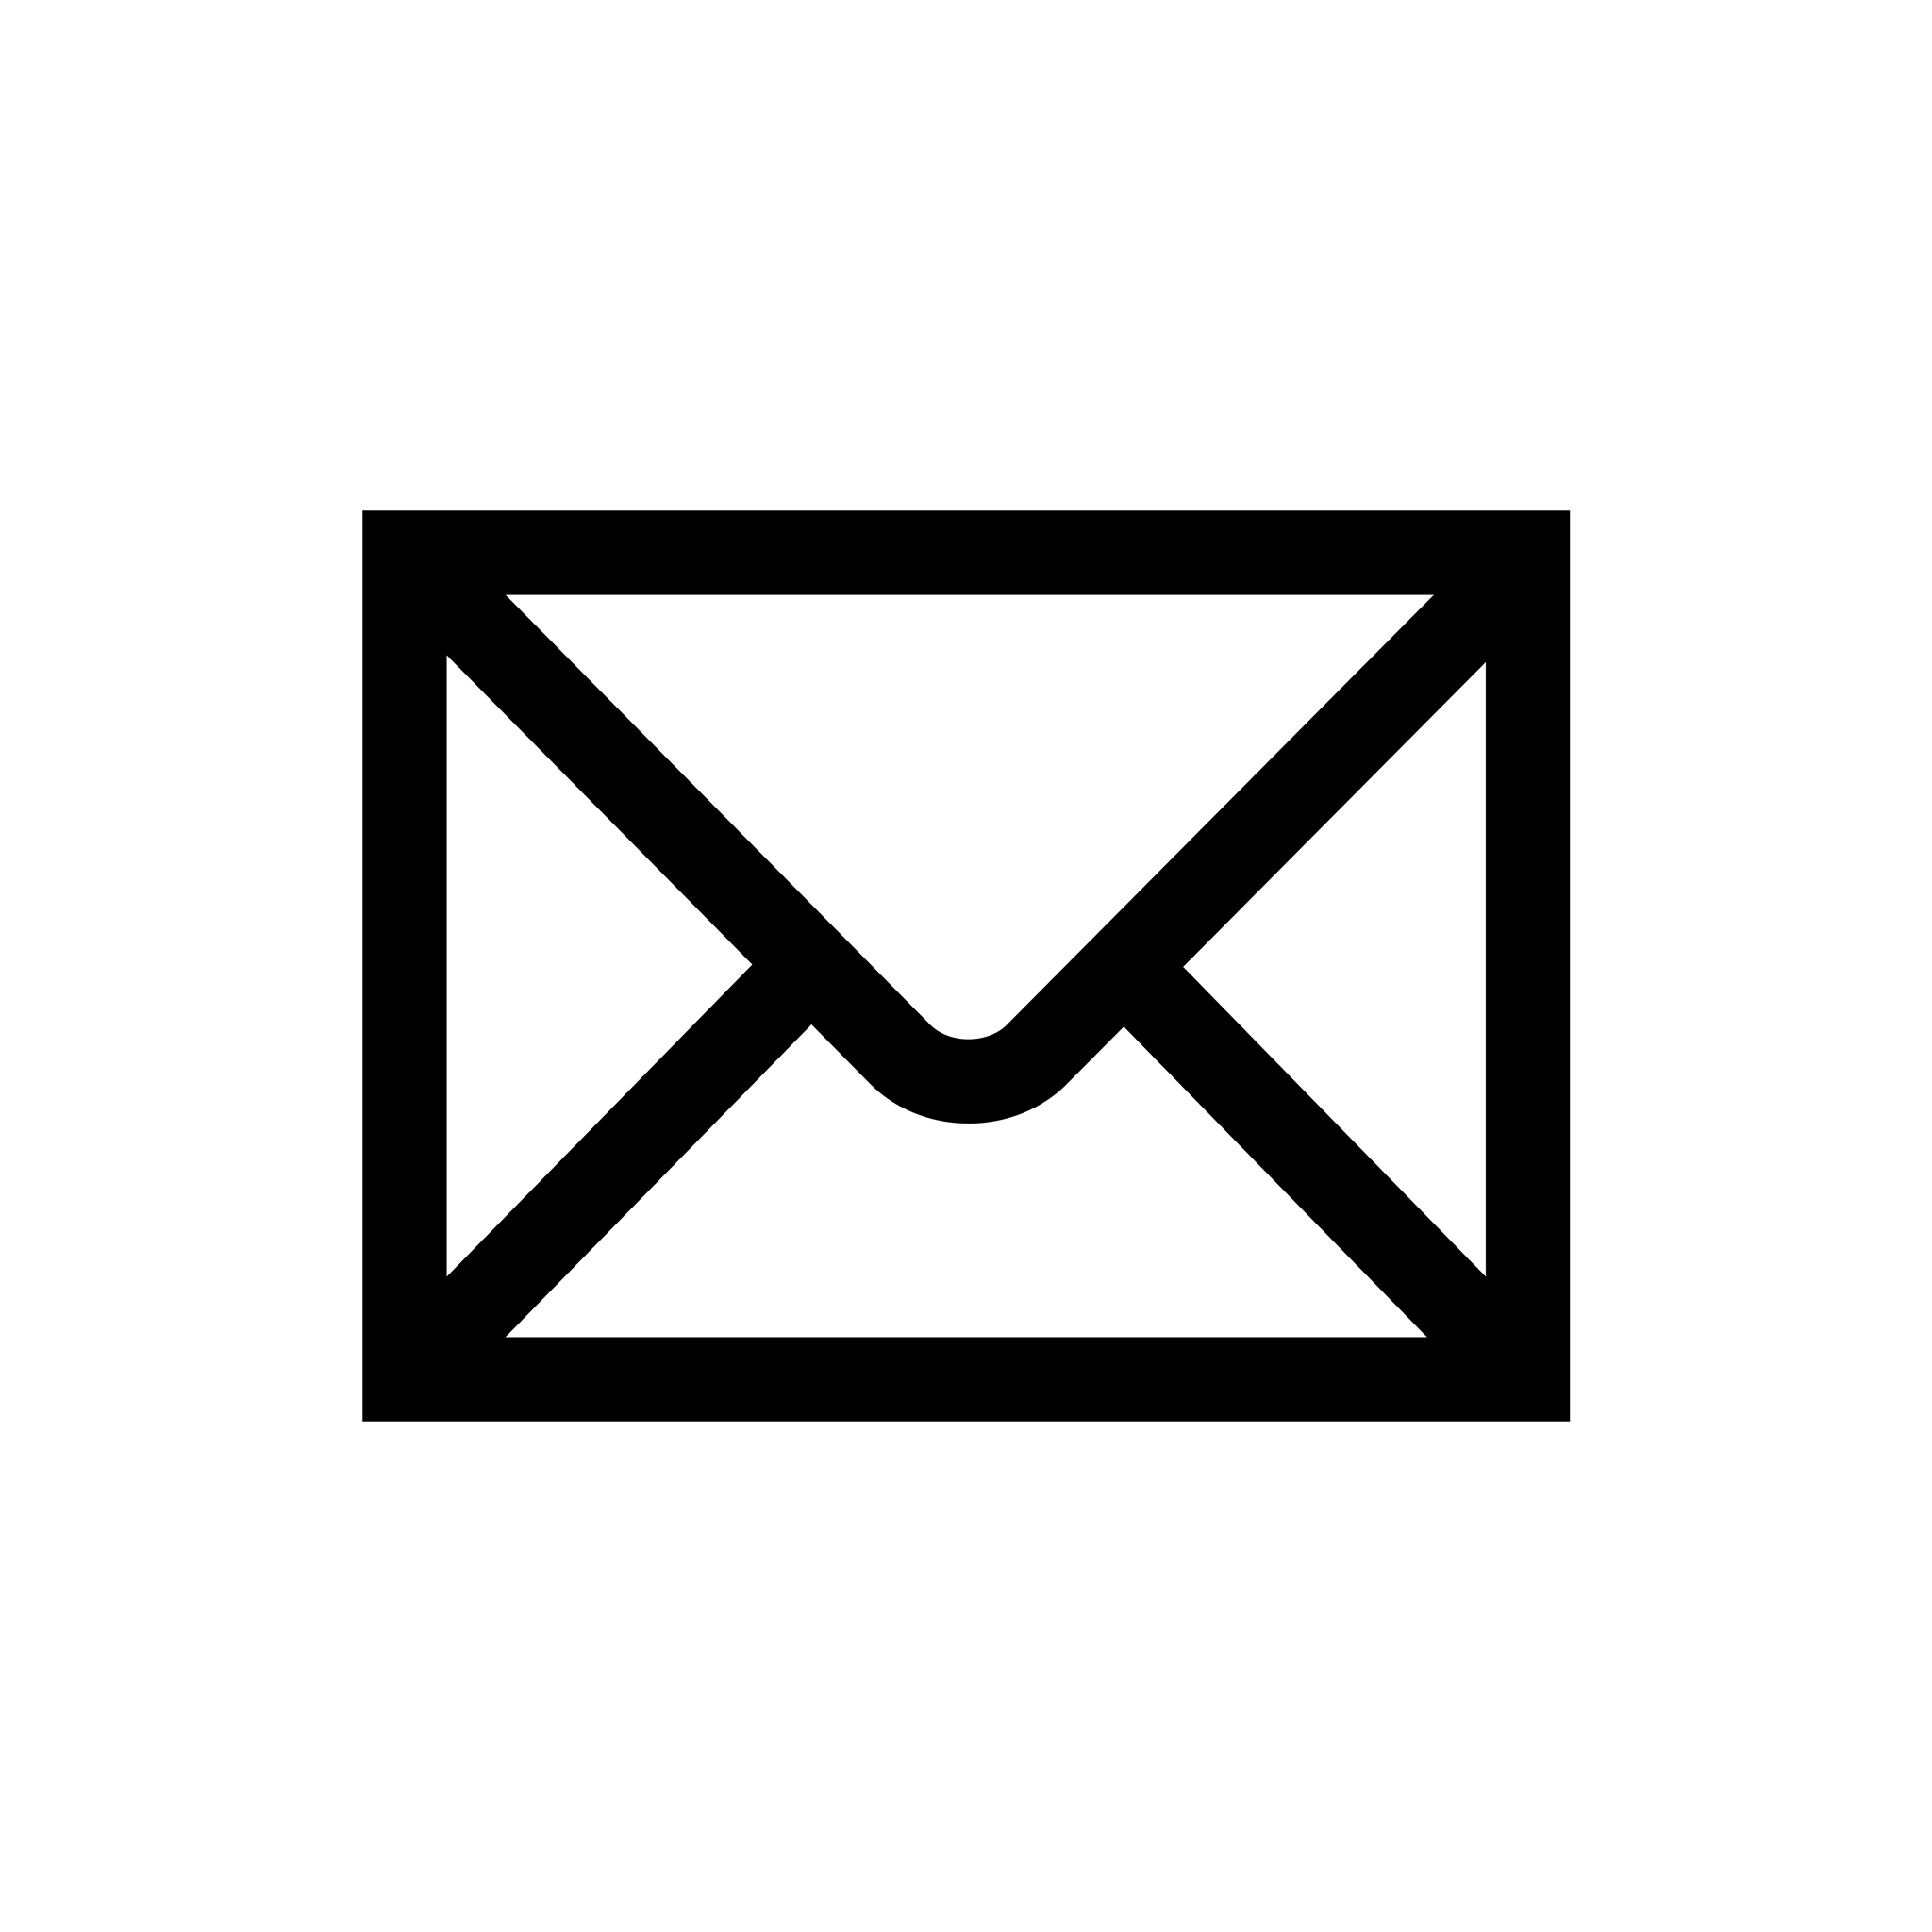 Email Icon Black Simple transparent PNG.